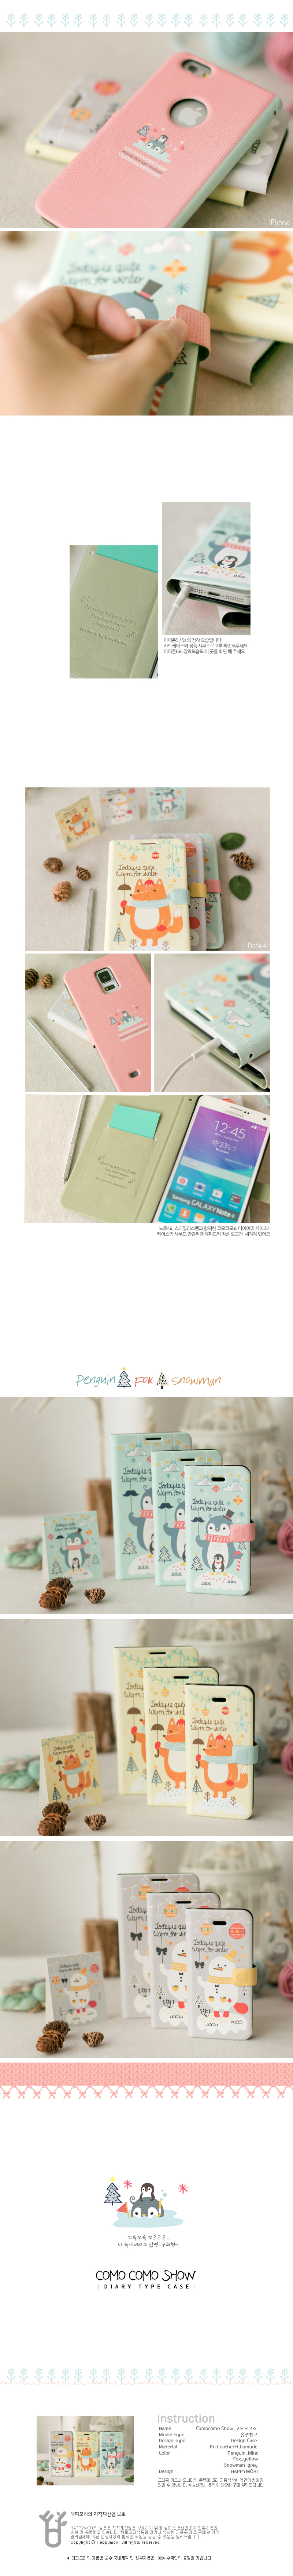 [HAPPYMORI] Flip Cover Case _ Comocomoshow (iPhone6Plus,iPhone6Plus_s,Galaxy S6Edge,Galaxy S6,Galaxy Note4)